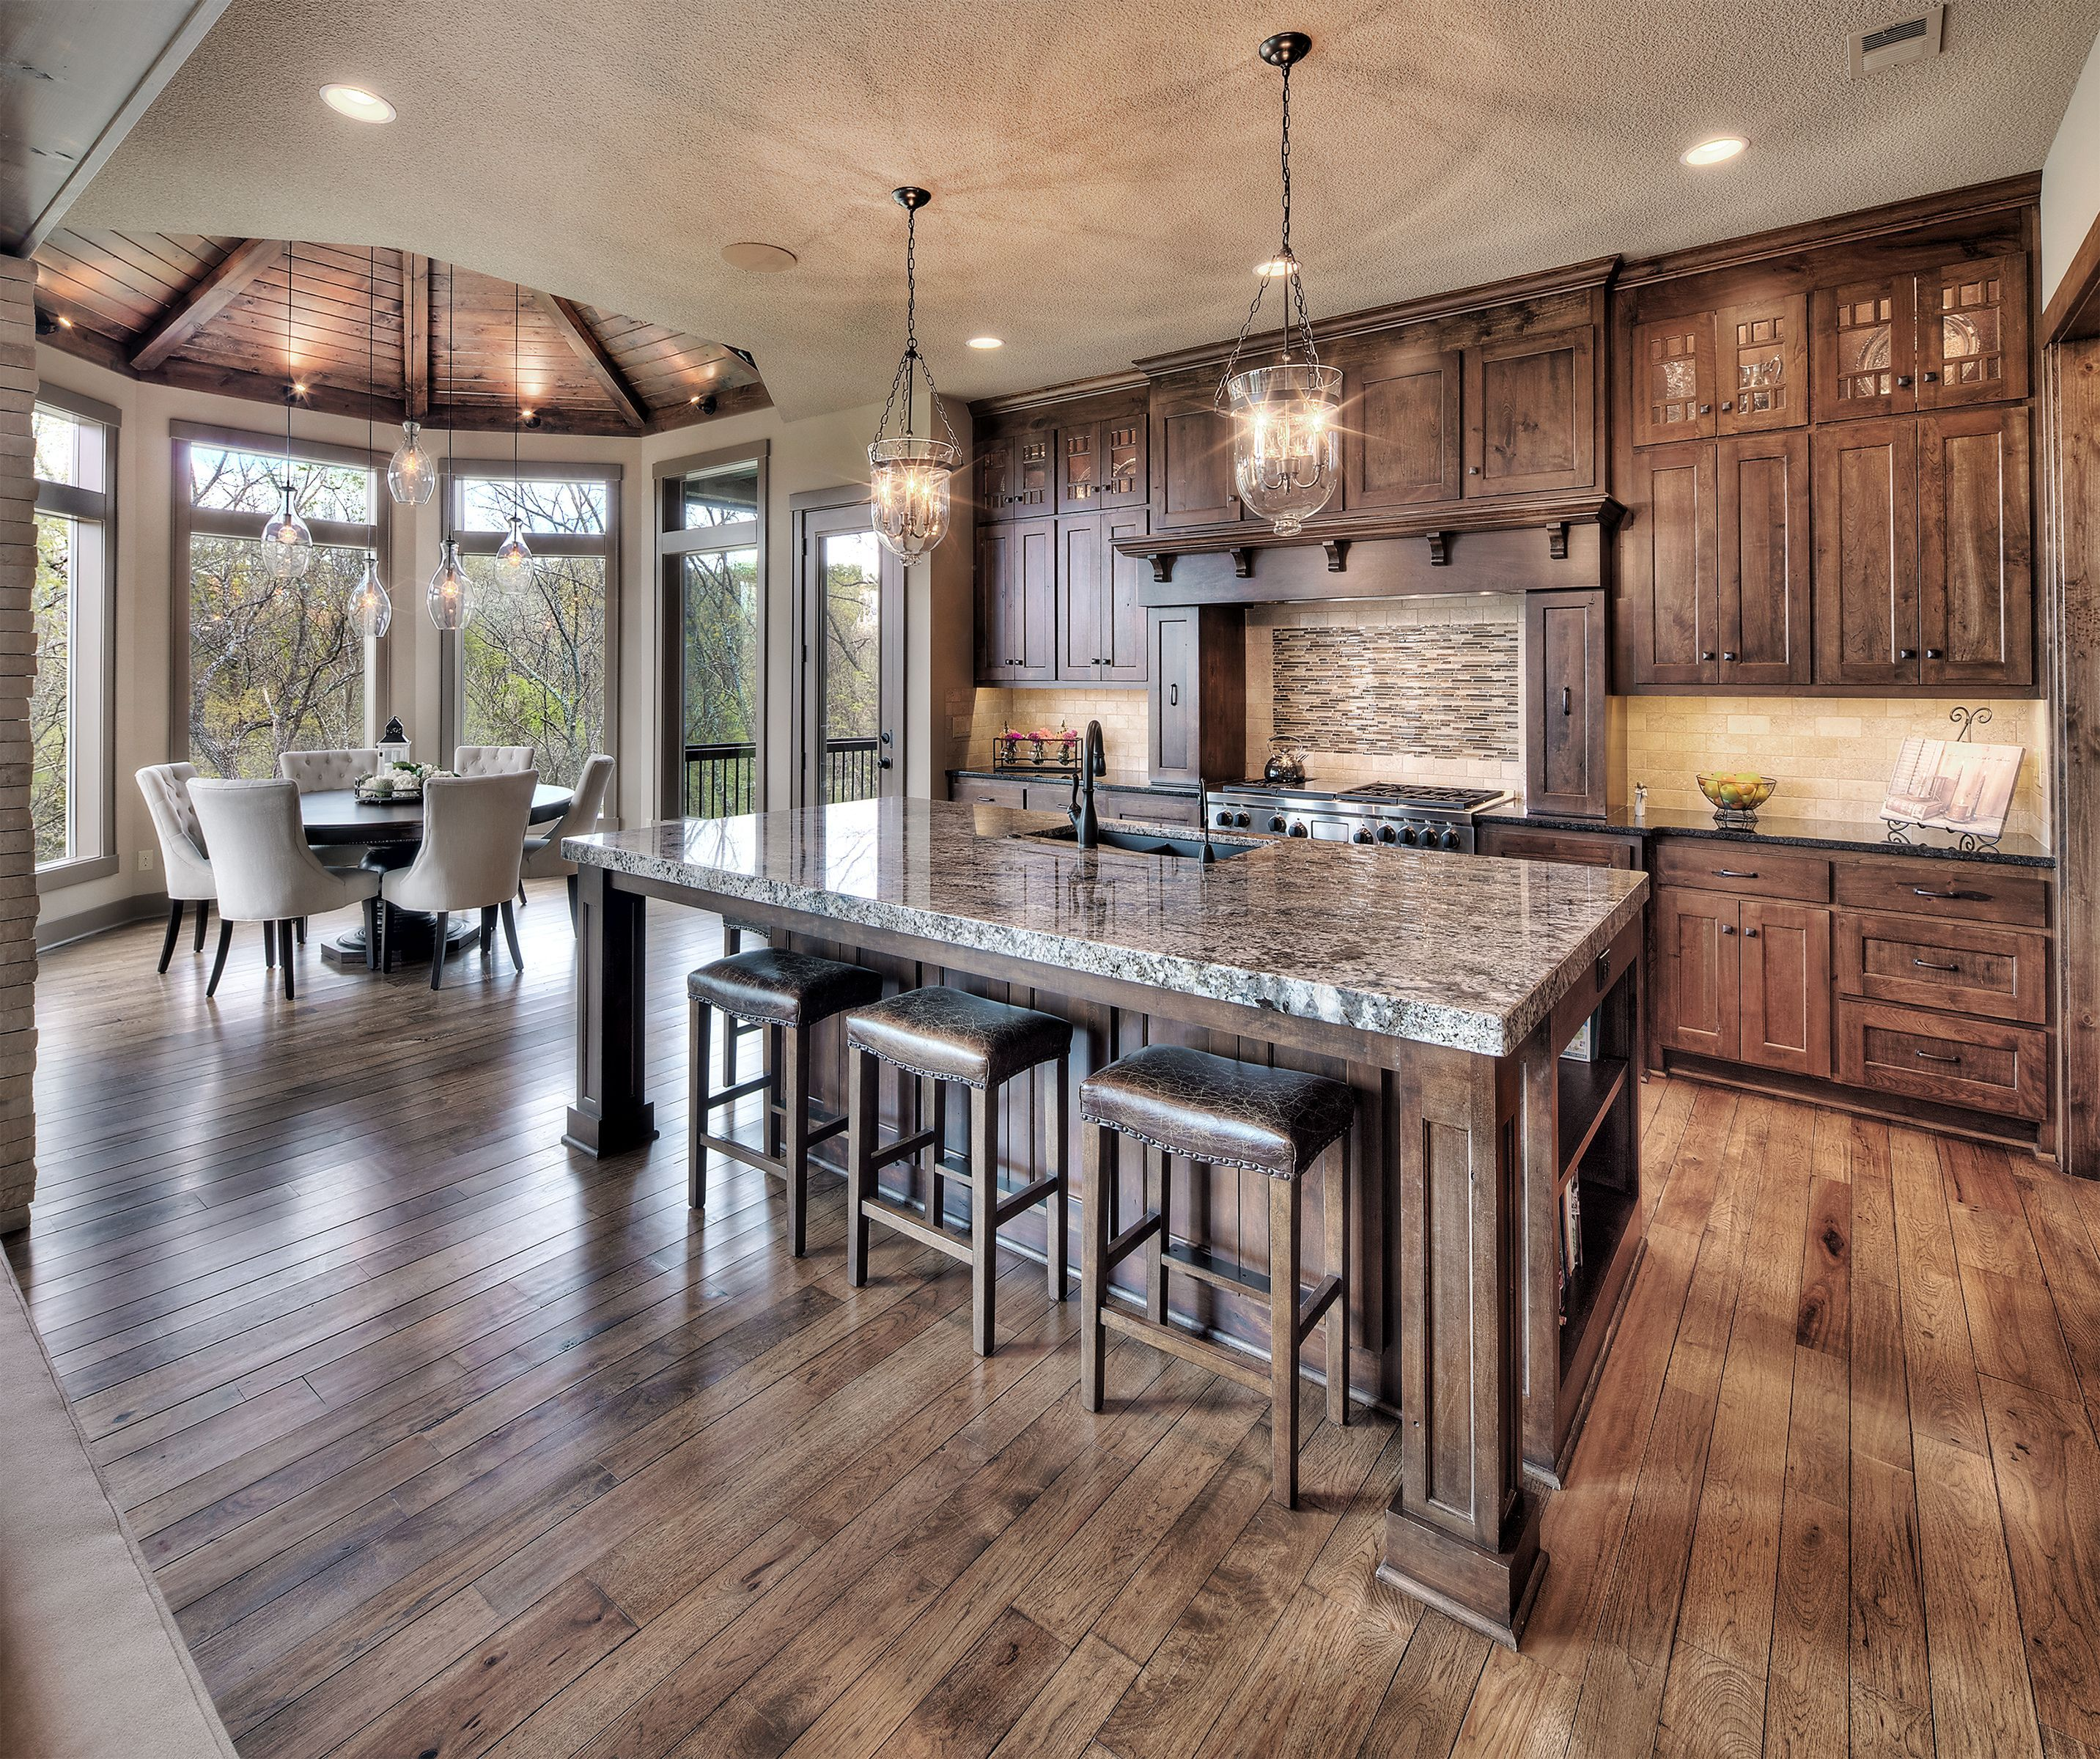 Maher Kitchen Cabinets: Kitchen And Dining #overthecounterkitchenlights